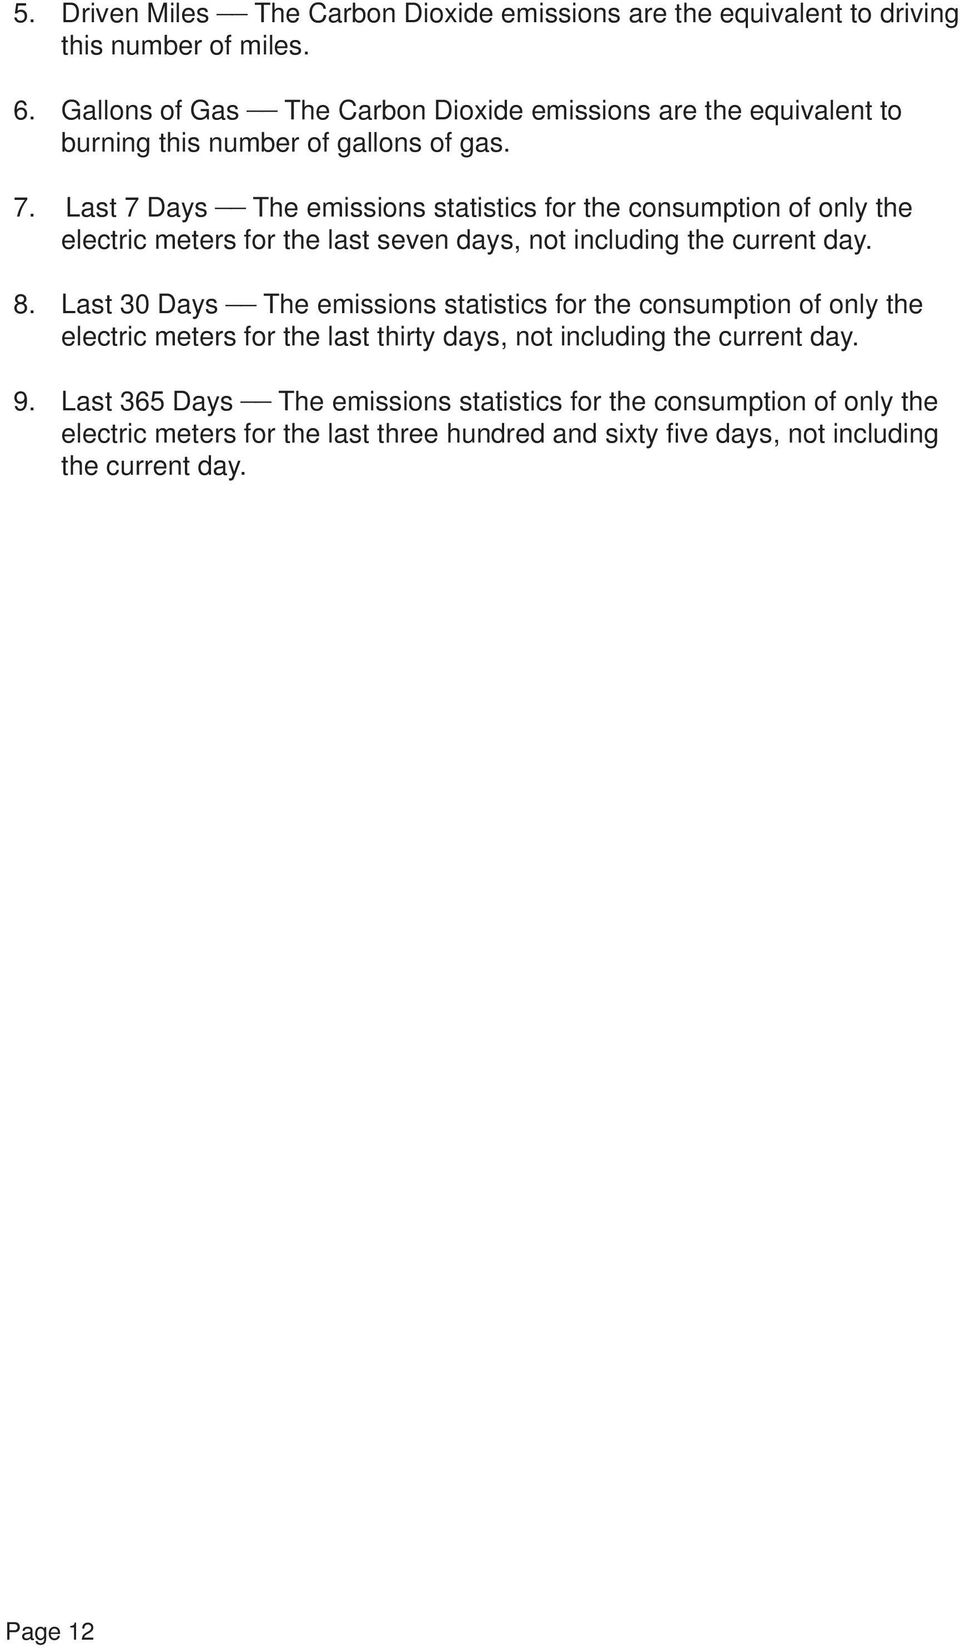 Last 7 Days The emissions statistics for the consumption of only the electric meters for the last seven days, not including the current day. 8.